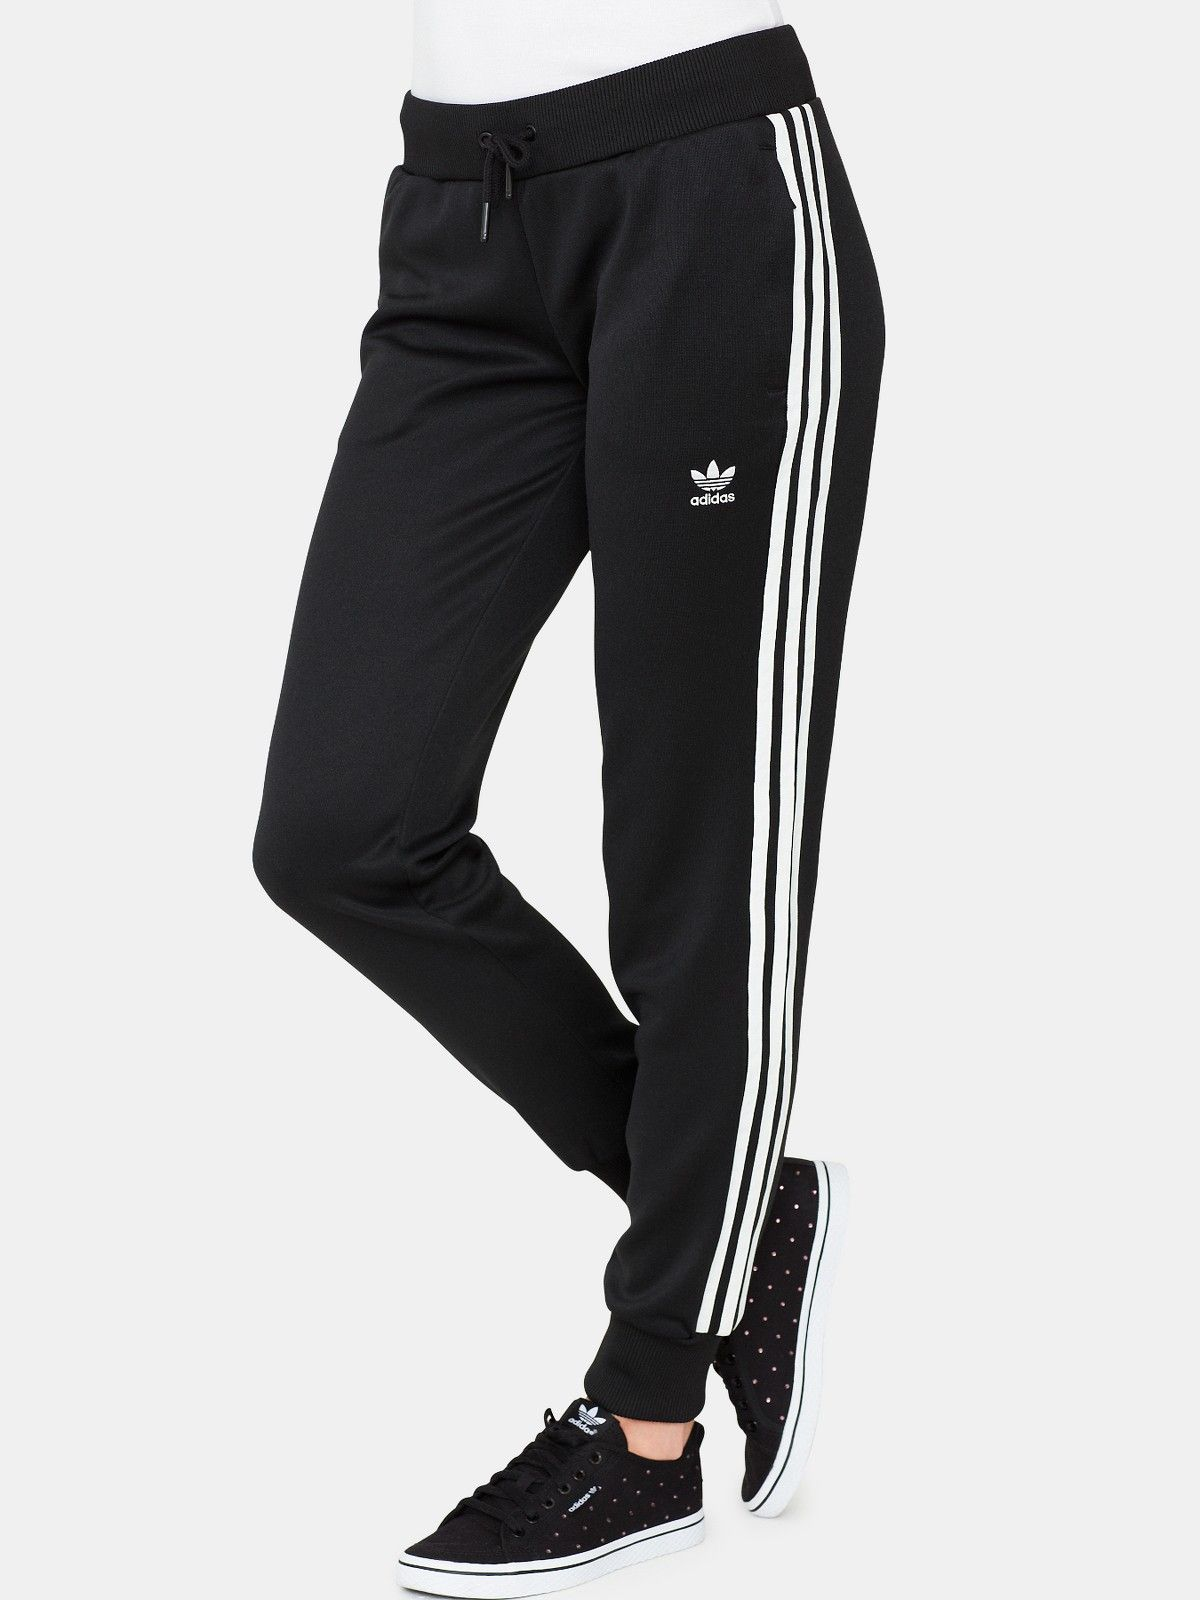 aec5380938ef adidas Originals Flock Cuffed Pants Very.co.uk